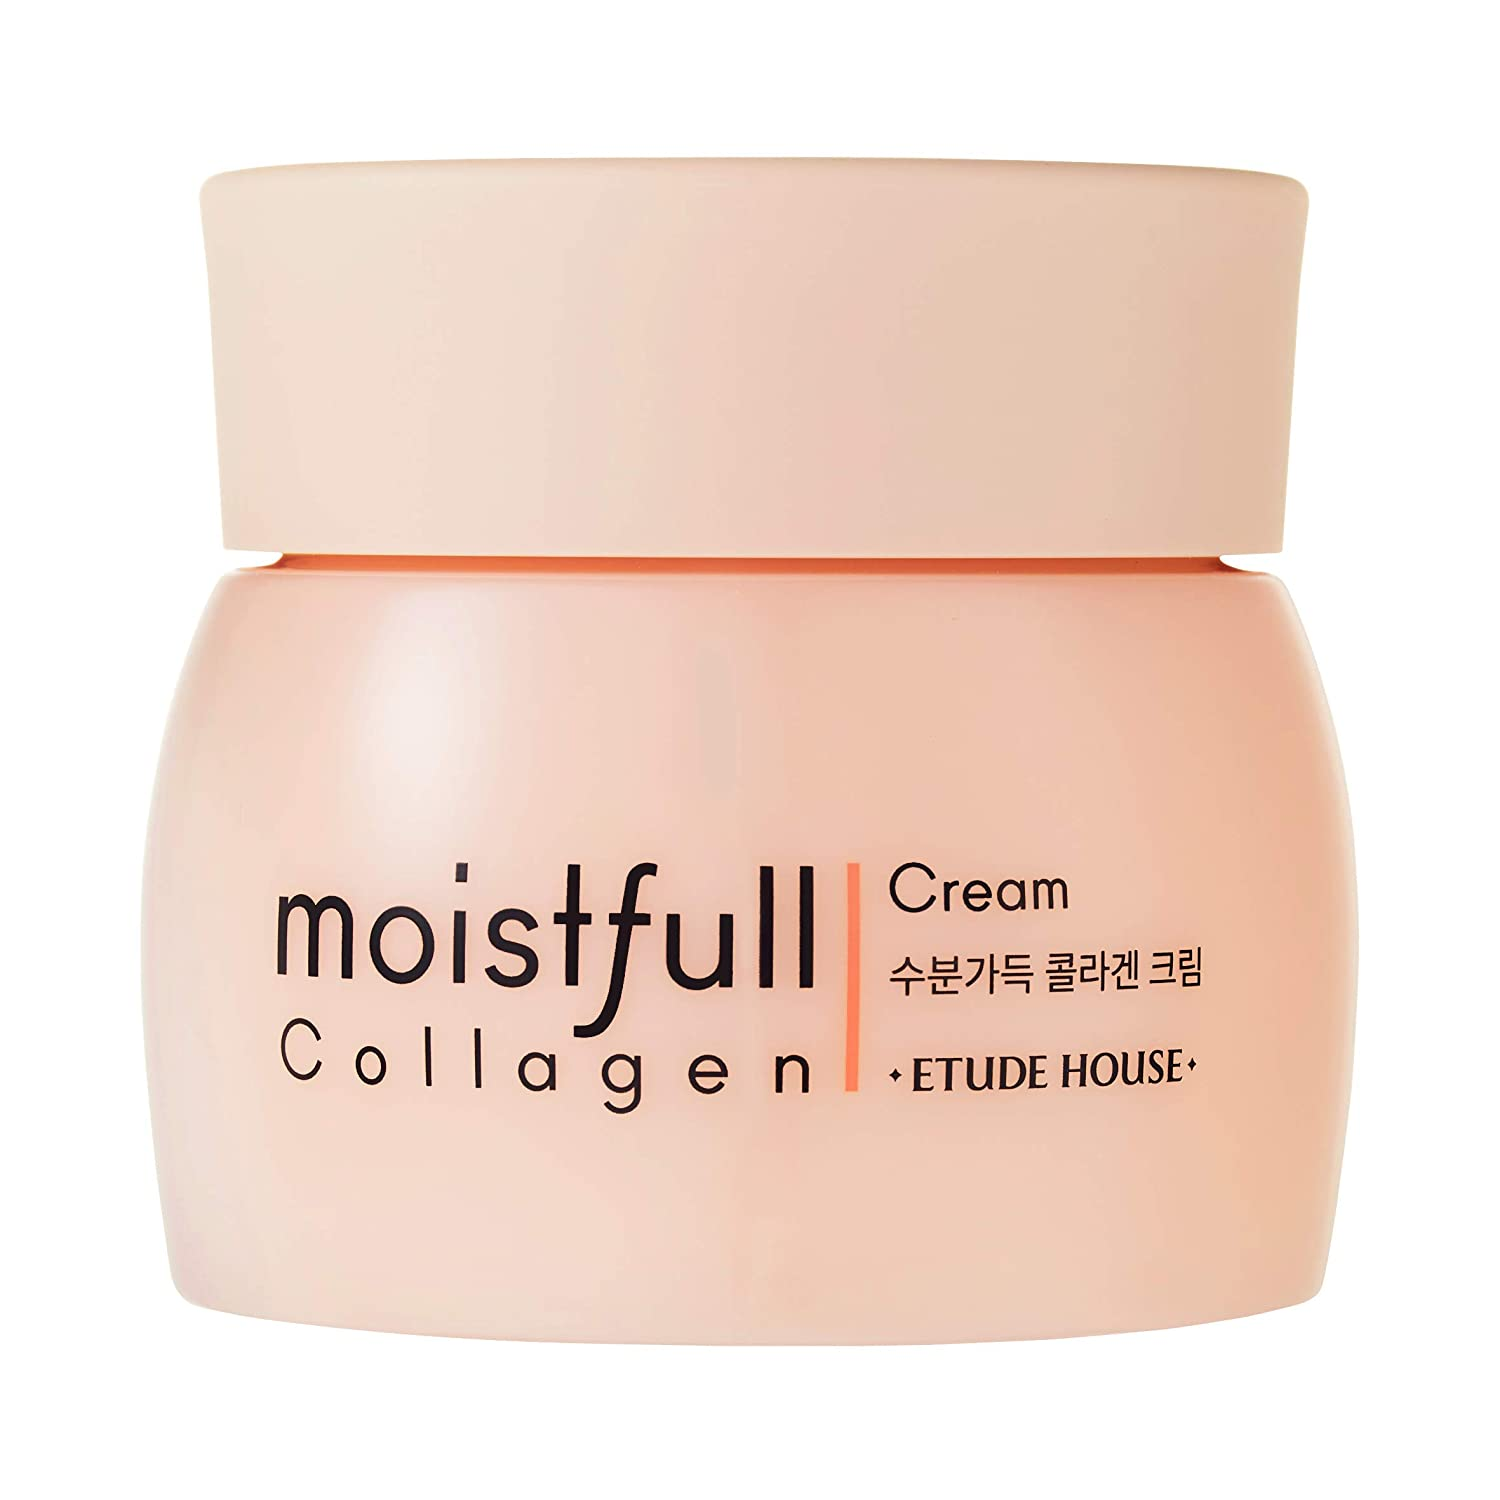 ETUDE HOUSE Moistfull Collagen Cream (1.76 ounces) - Skin Care Facial Moisturizing Night Cream - Anti Aging Wrinkle, Acne for women